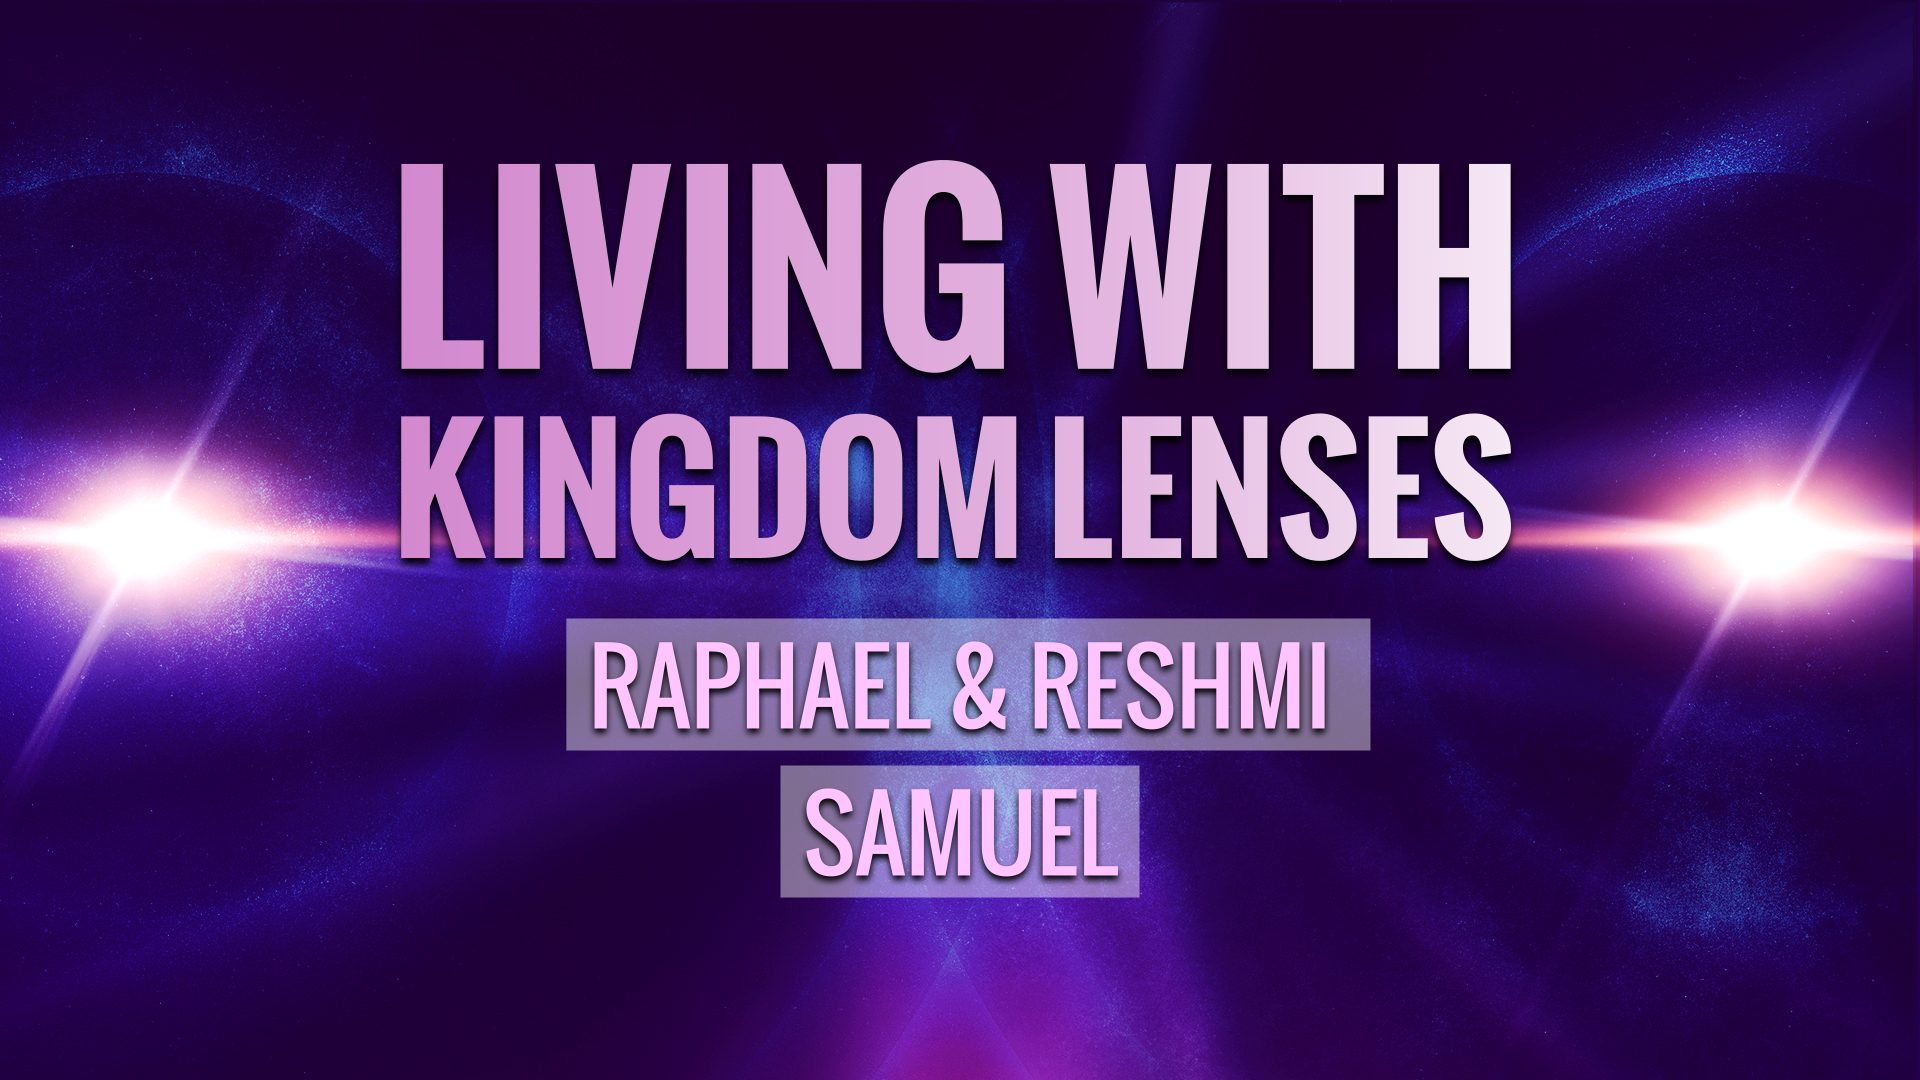 Kingdom Lenses